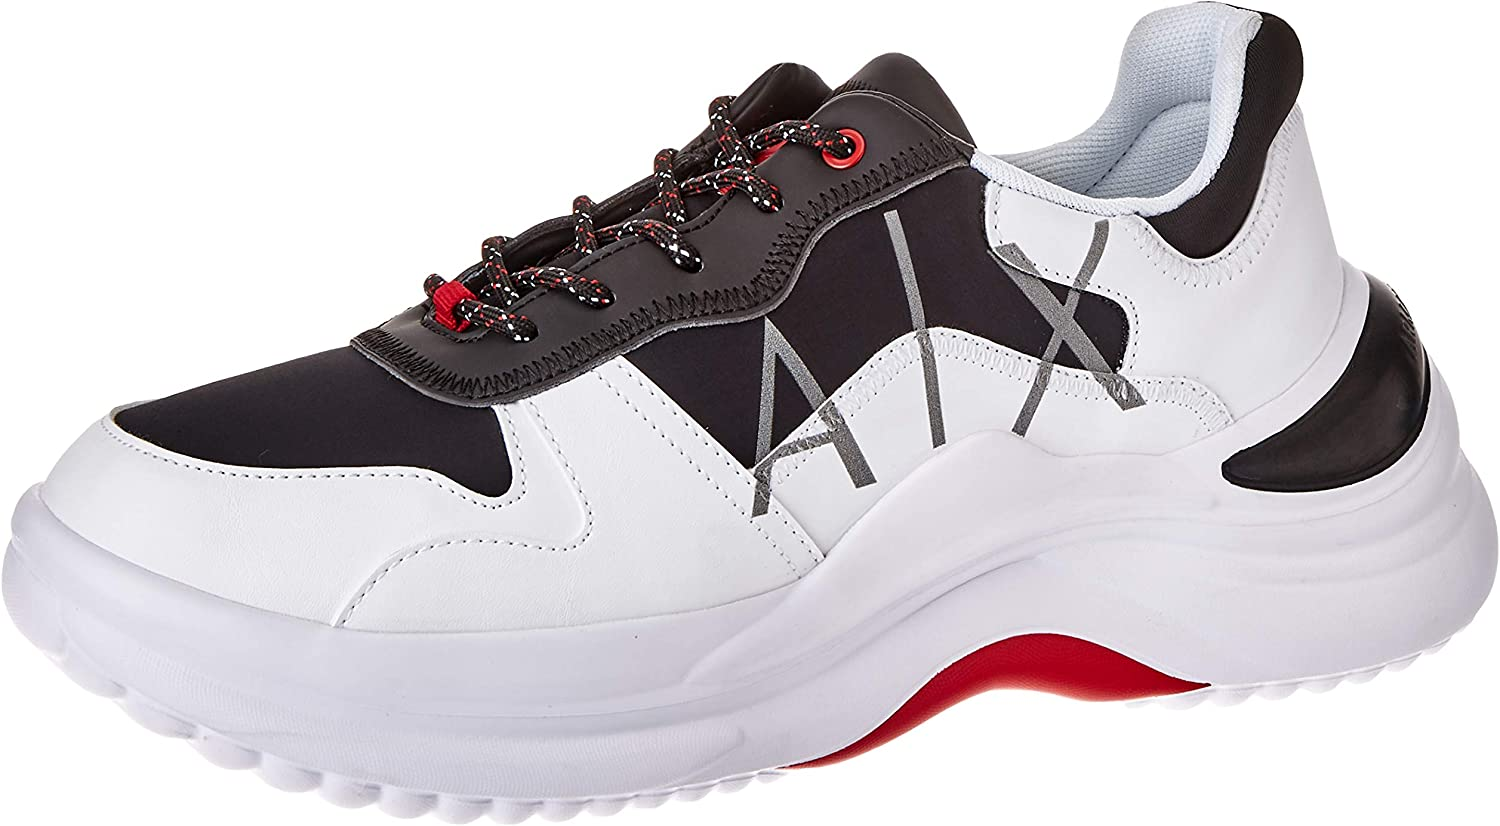 Armani New product! New type Exchange Men's Sneakers Max 53% OFF Low-Top